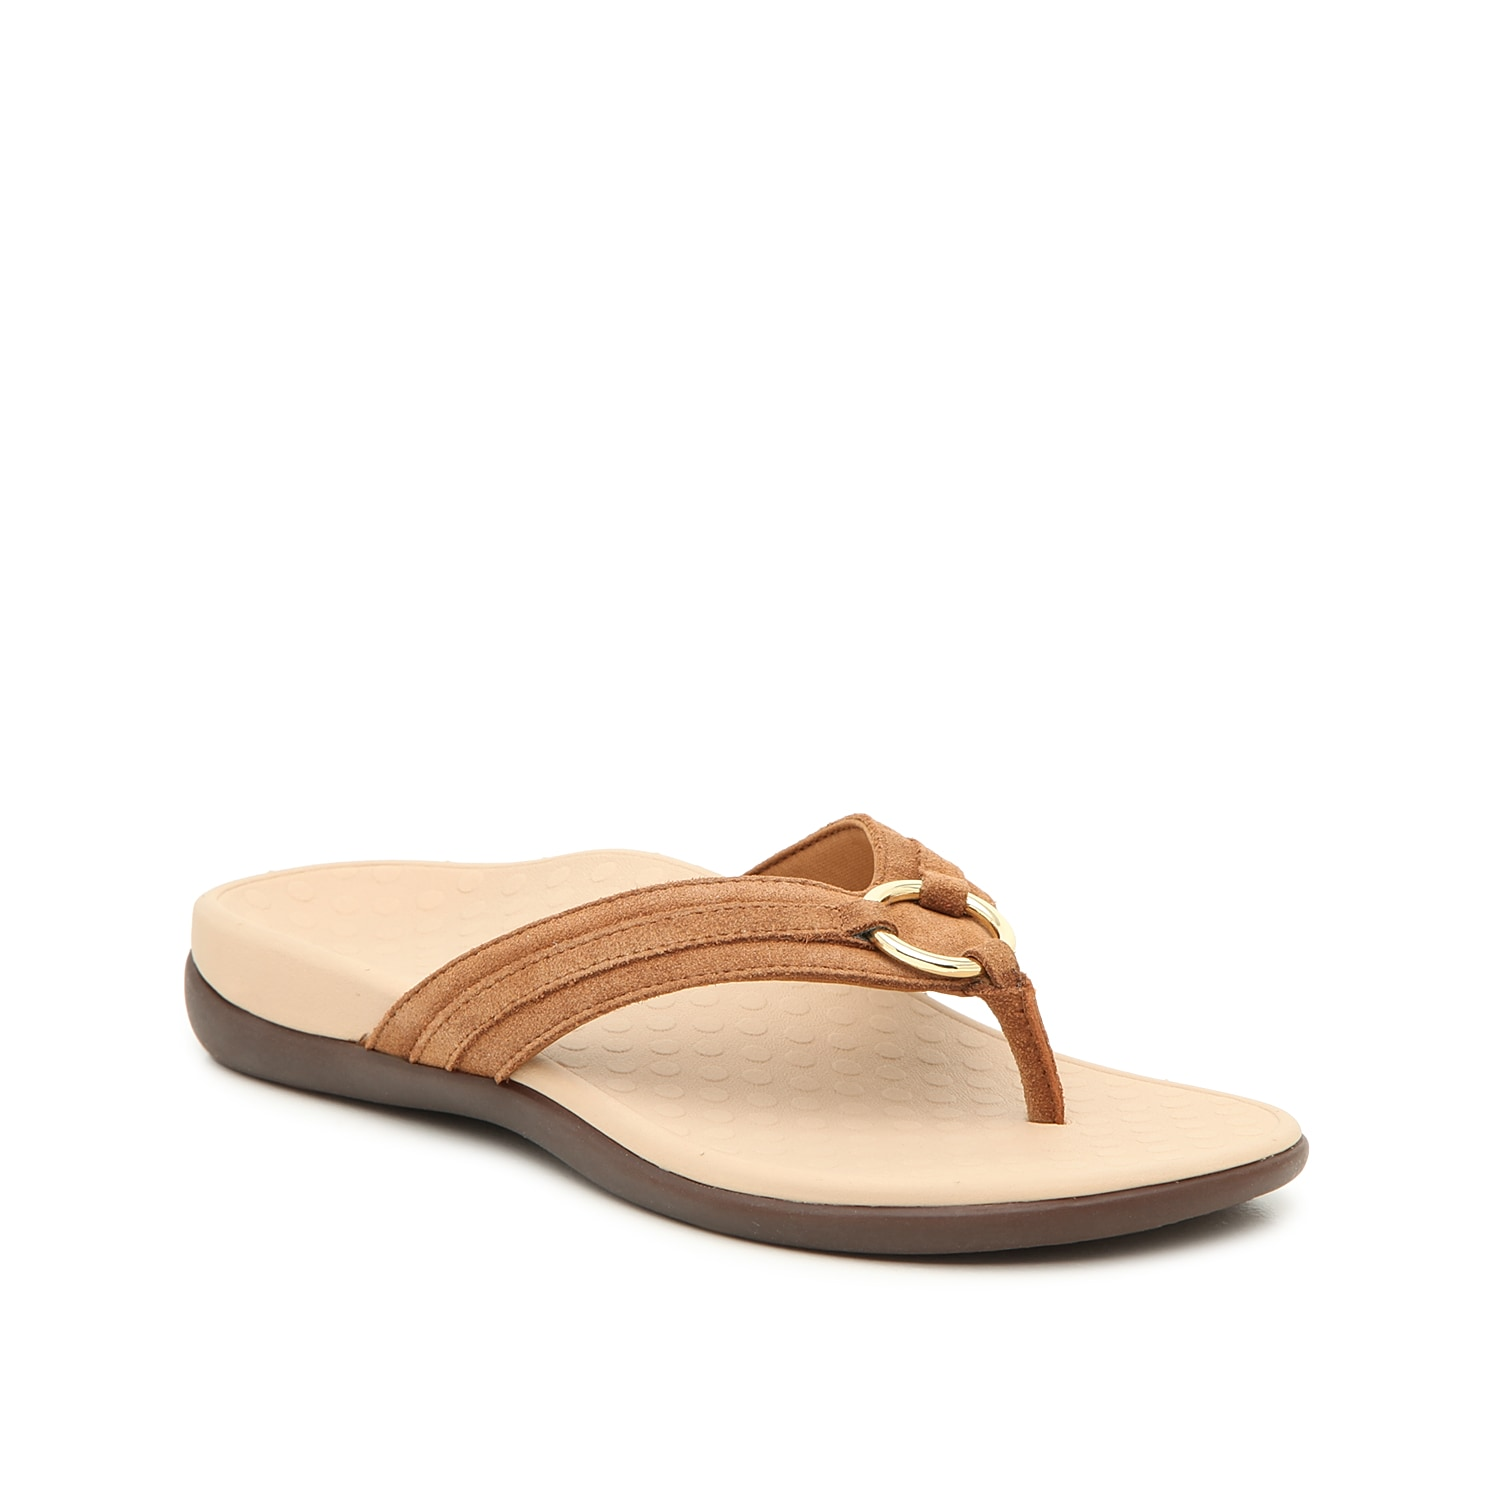 Sport an athletic look in the Tide Aloe flip flops from Vionic. These sandals feature a contoured footbed for supportive comfort and suede straps for lasting wear.